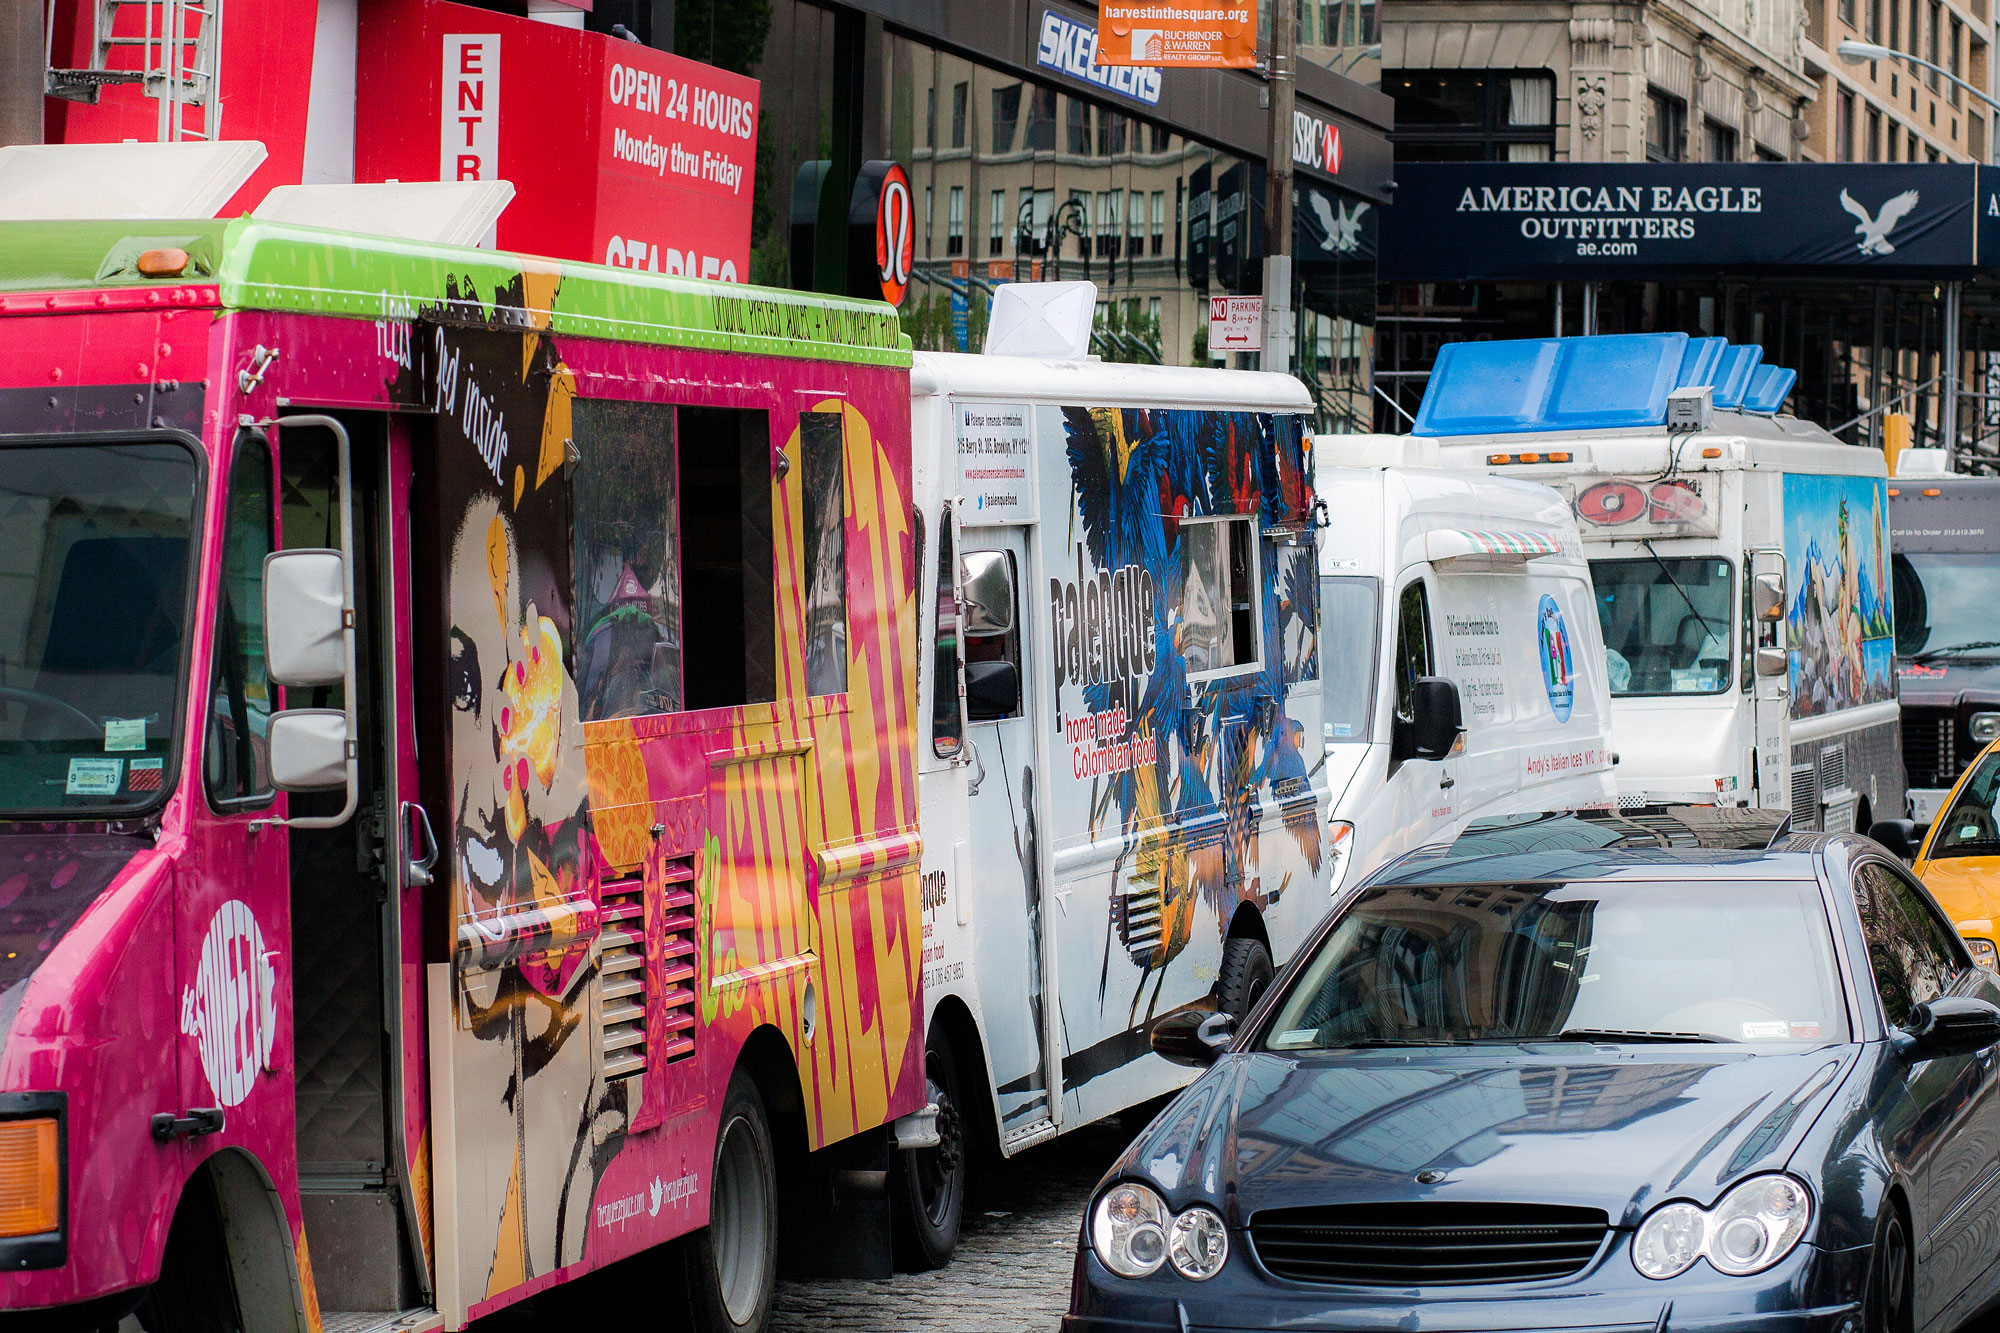 food trucks parked at Union Square